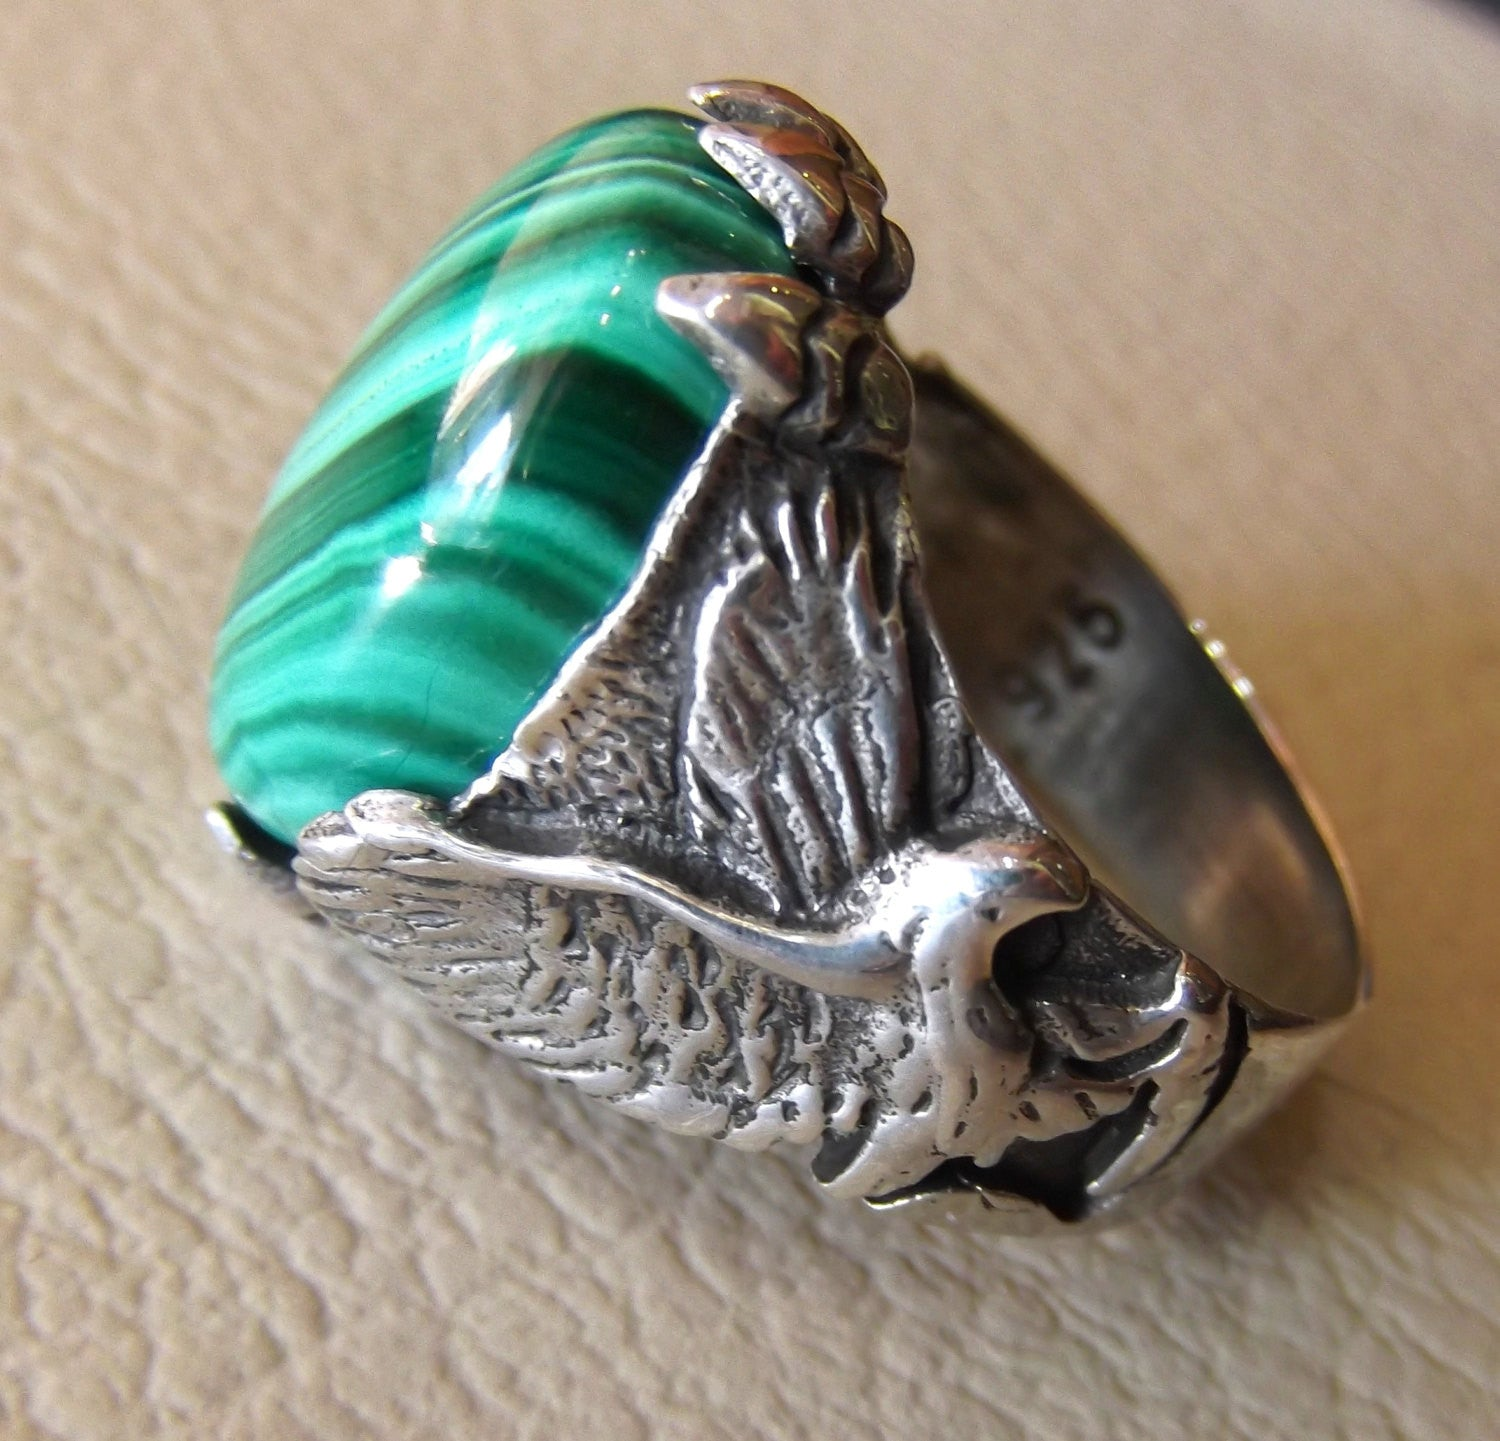 malachite natural green gemstone oval cabochon stone eagle ring sterling silver 925 semi precious any size jewelry man gift fast shipping